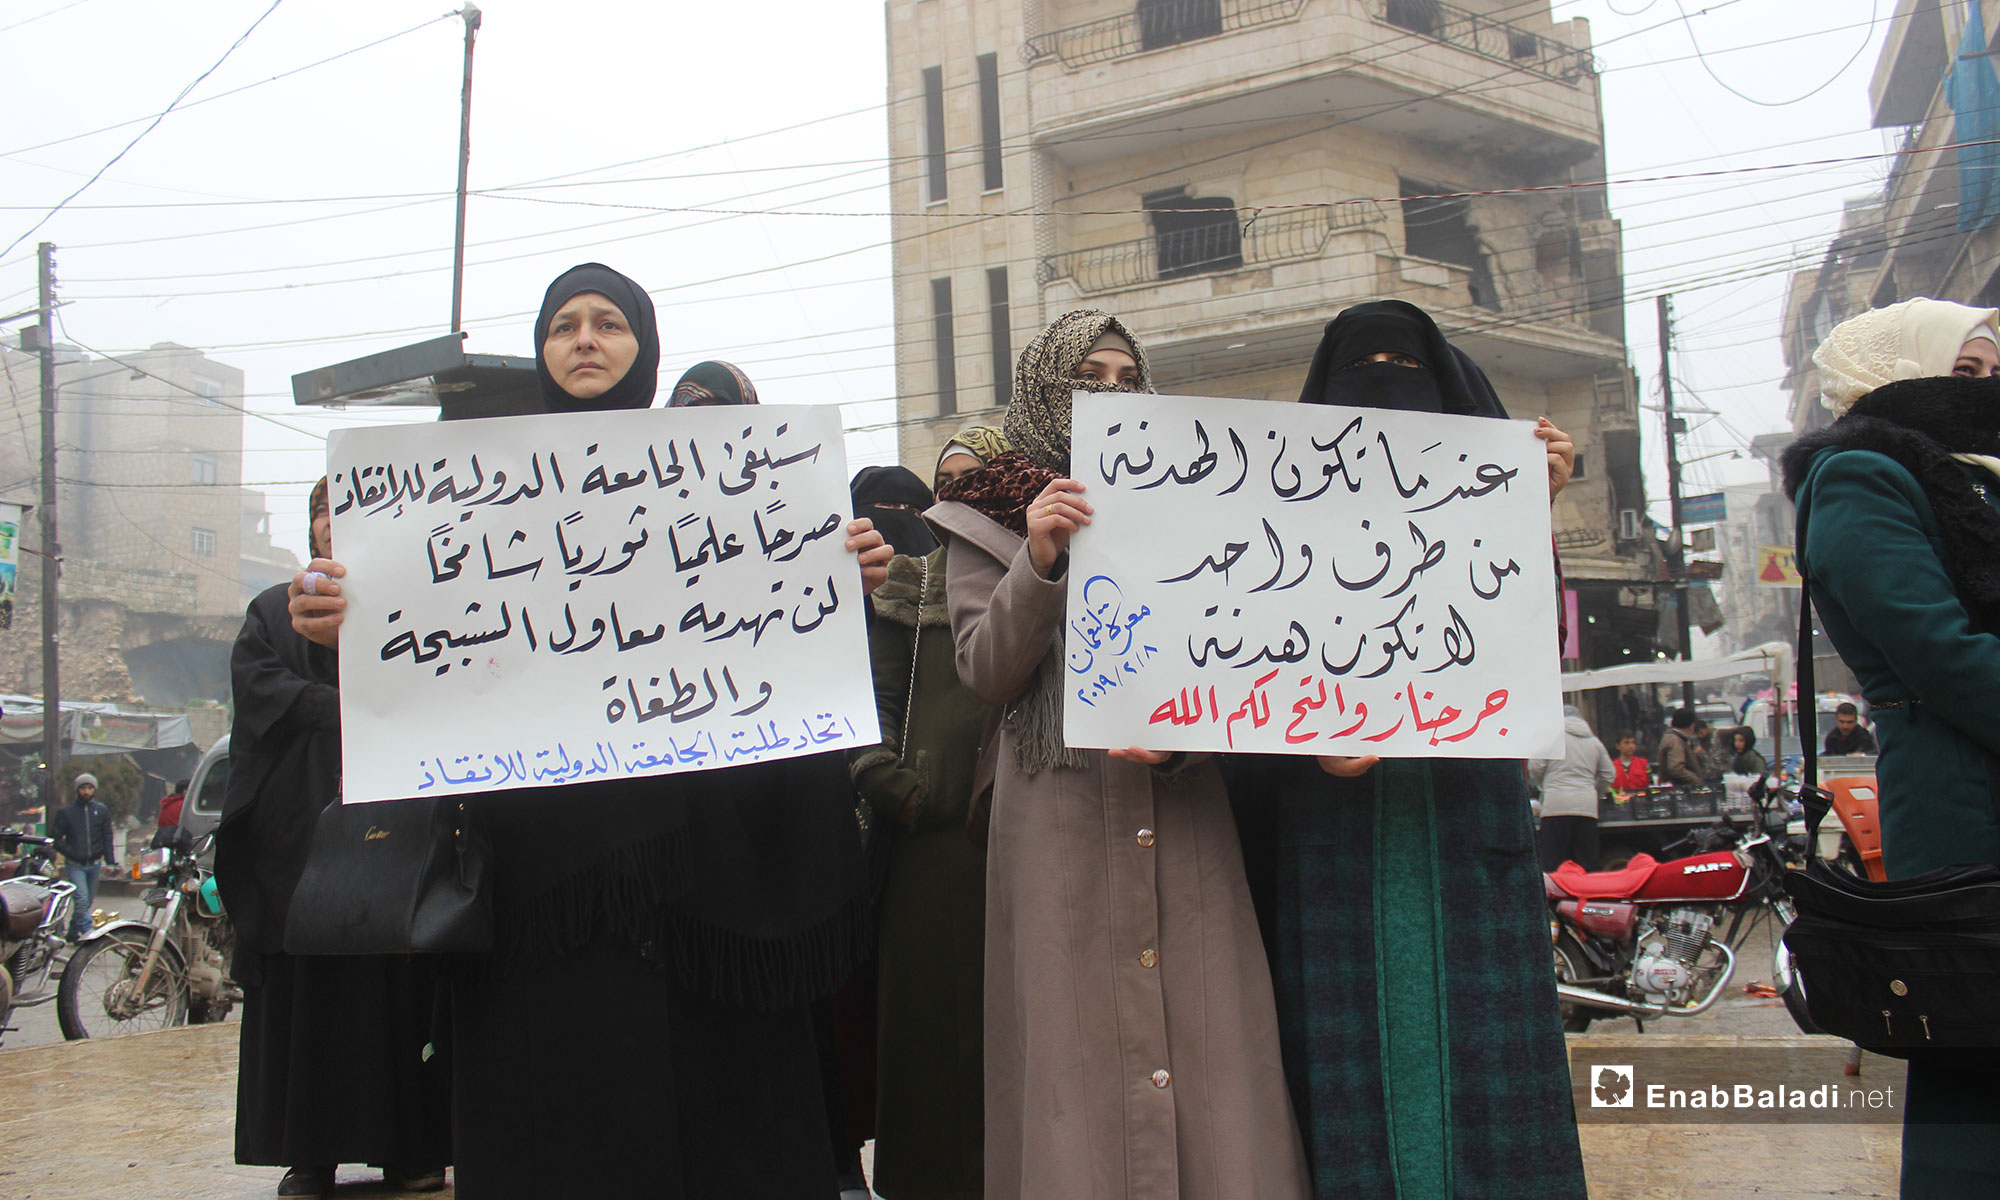 A demonstration in the city of Maarrat al-Nu'man protesting the decision of closing the International Rescue university in Idlib [From left to right the signs say: The International Rescue University will Remain an lofty Educational and Rebellious Edifice, which Tools of Thugs and Tyrants Would not Dare Destroy (Students Union of the International Rescue University). A One-side truce is Not a Truce (Jarjanaz and al-Tah, God Is There for You!)]– February 8, 2019 (Enab Baladi)